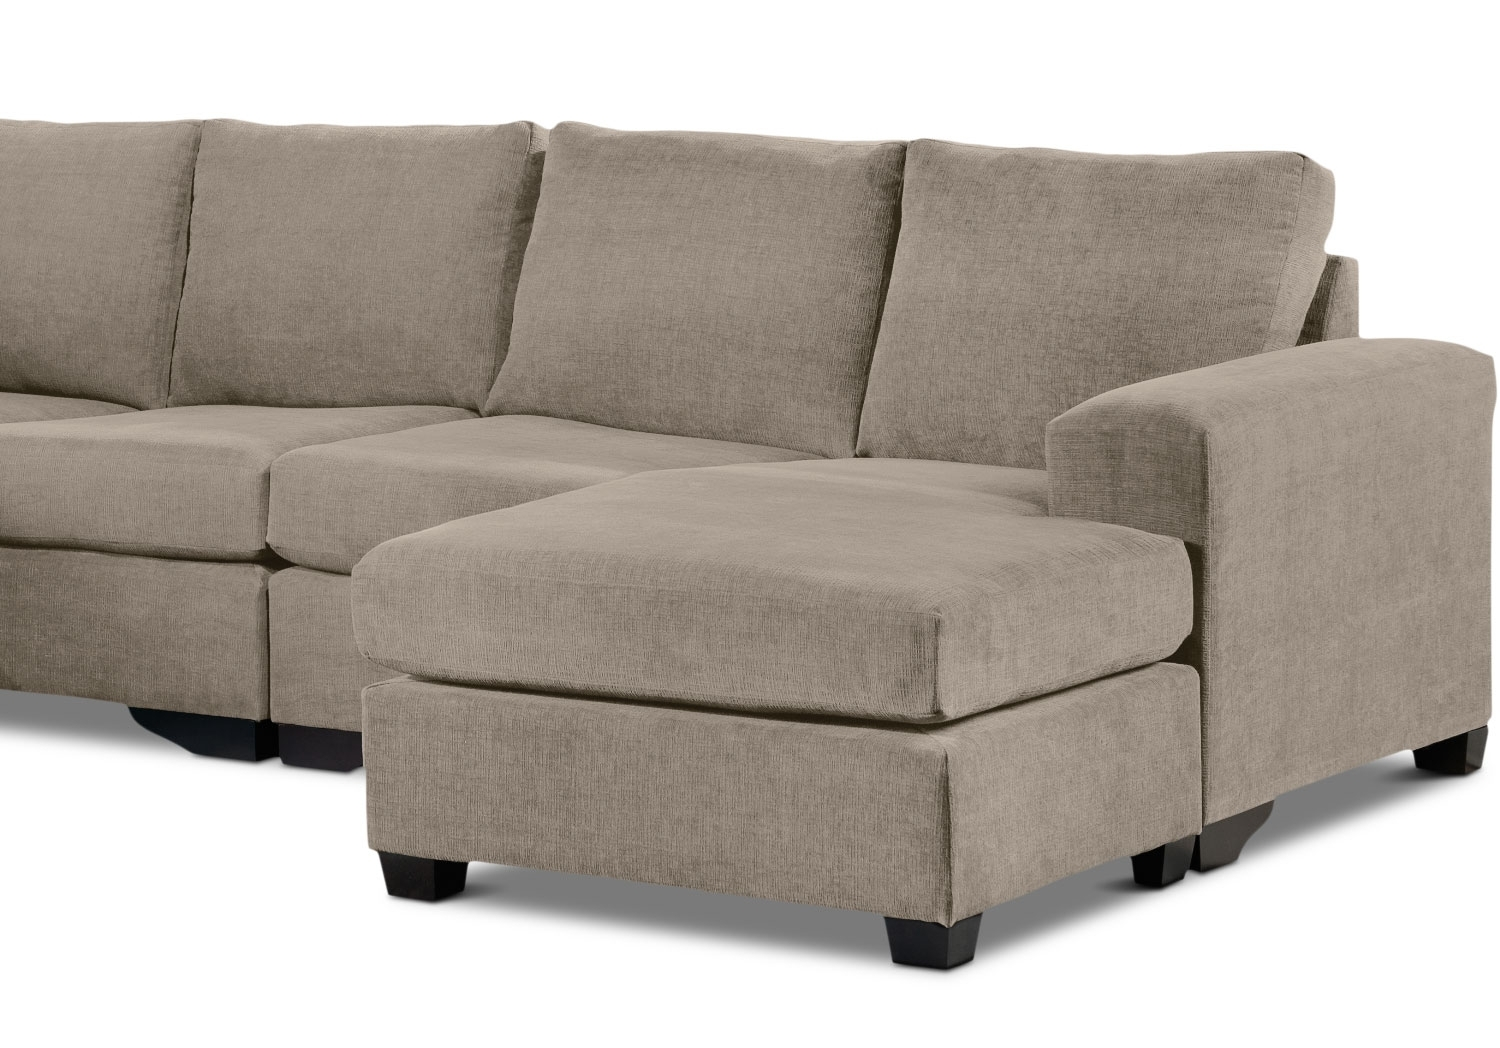 Danielle 3-Piece Sectional With Right-Facing Corner Wedge - Pewter pertaining to Leons Sectional Sofas (Image 5 of 10)